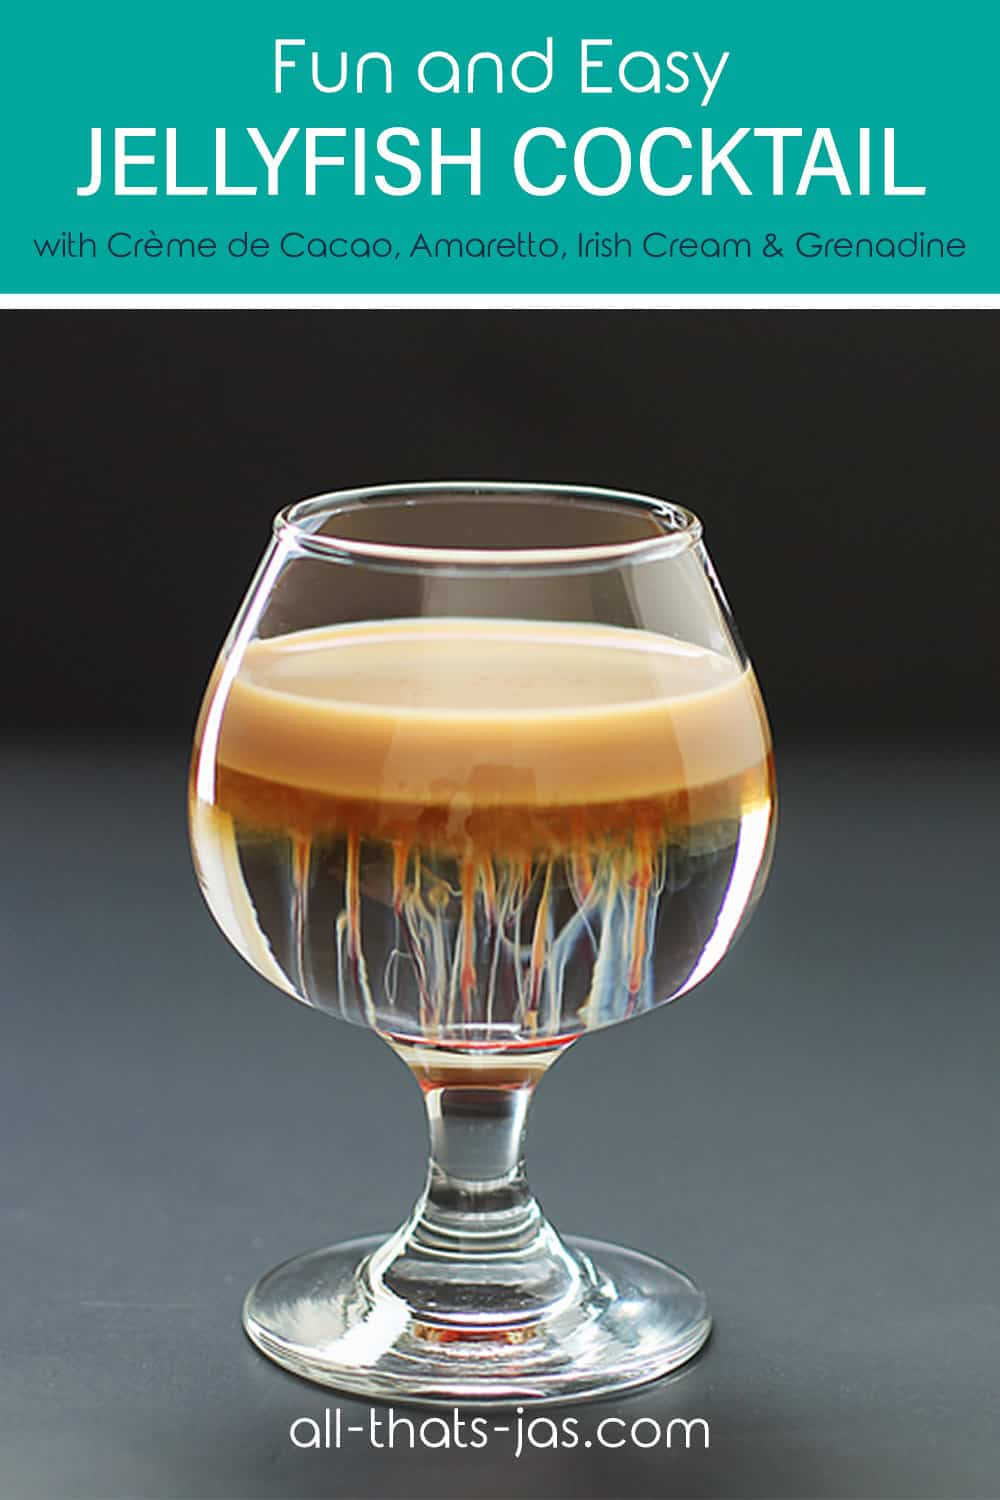 A small glass with alcoholic drink and text overlay